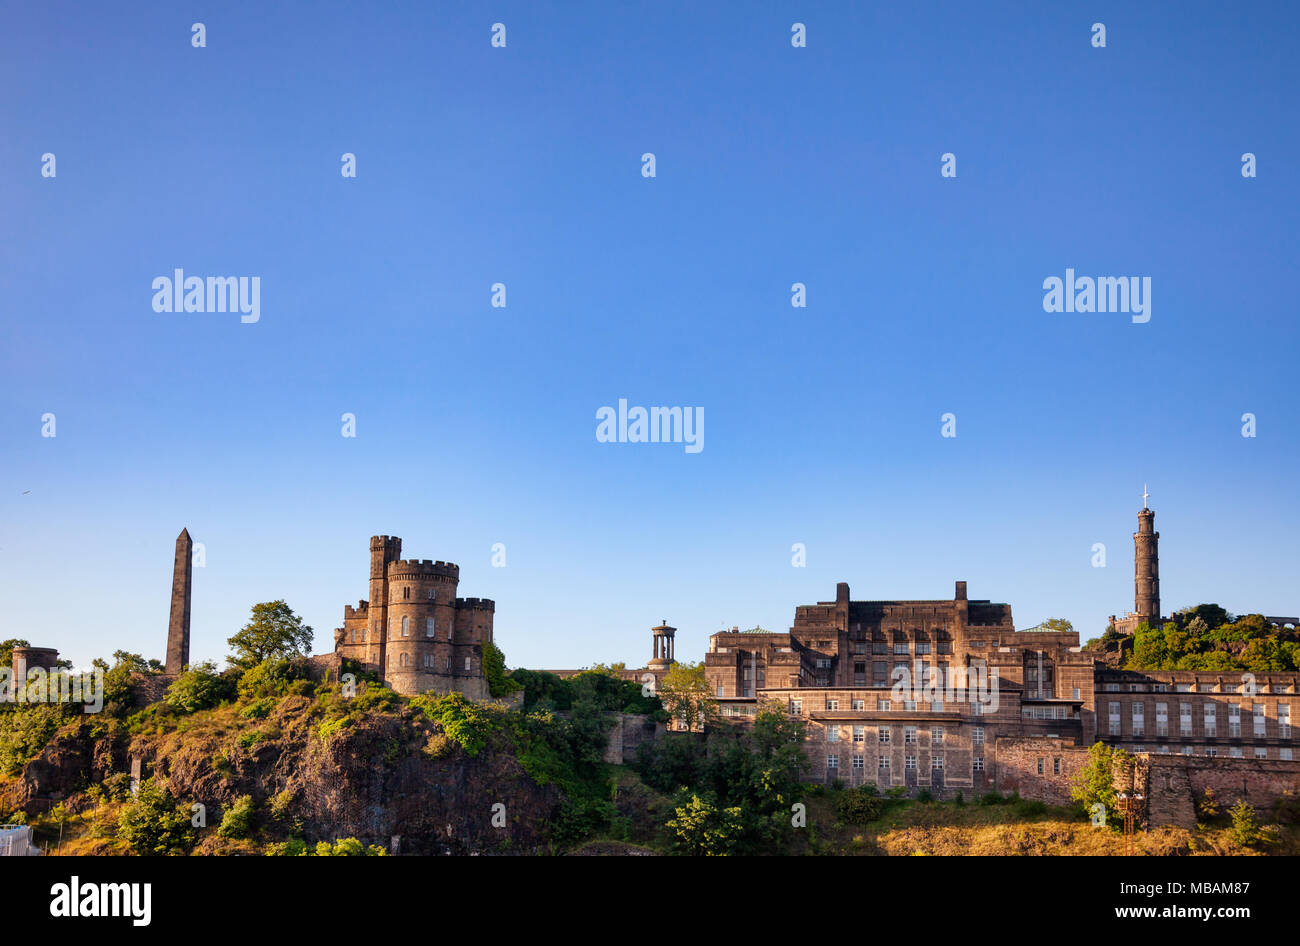 Calton Hill view with Political Martyrs Monument, Governors House, Robert Burns Monument, St. Andrews House and Nelsons Monument, Edinburgh, Scotland, Stock Photo